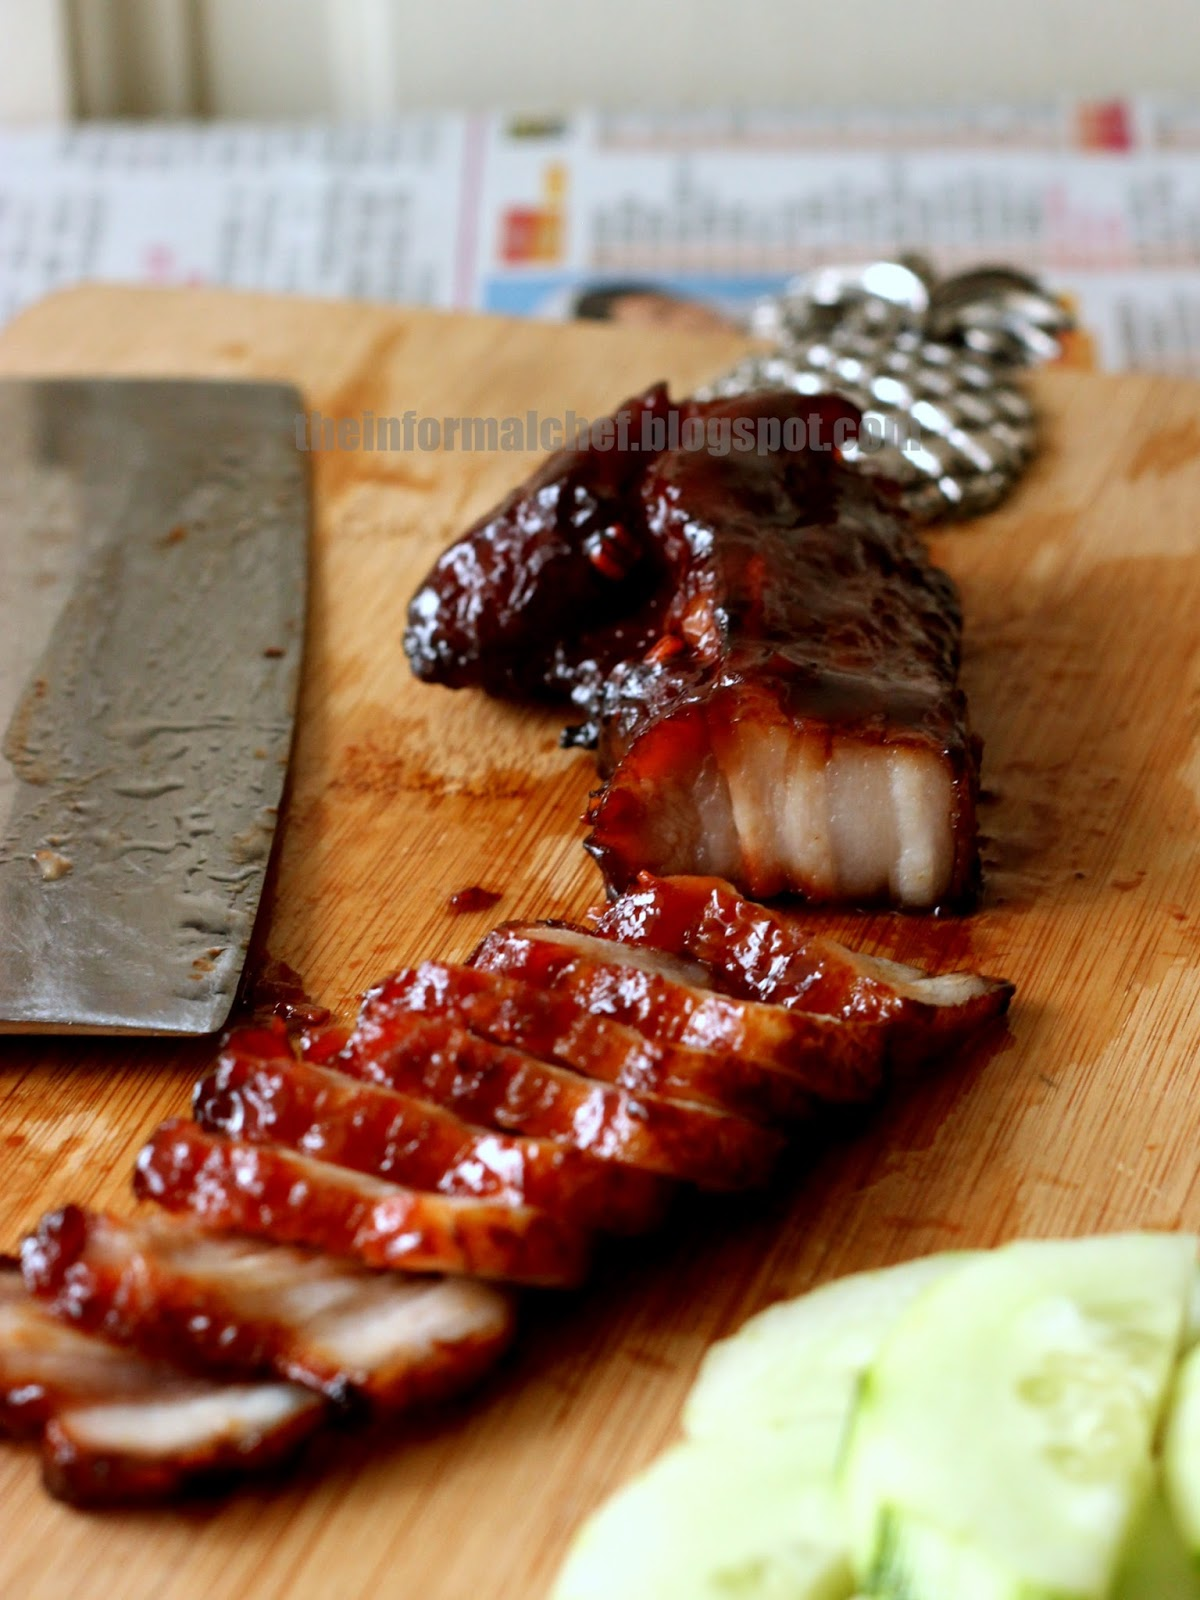 The Informal Chef: Recipe for Chinese Bbq Pork/Char Siu 叉燒